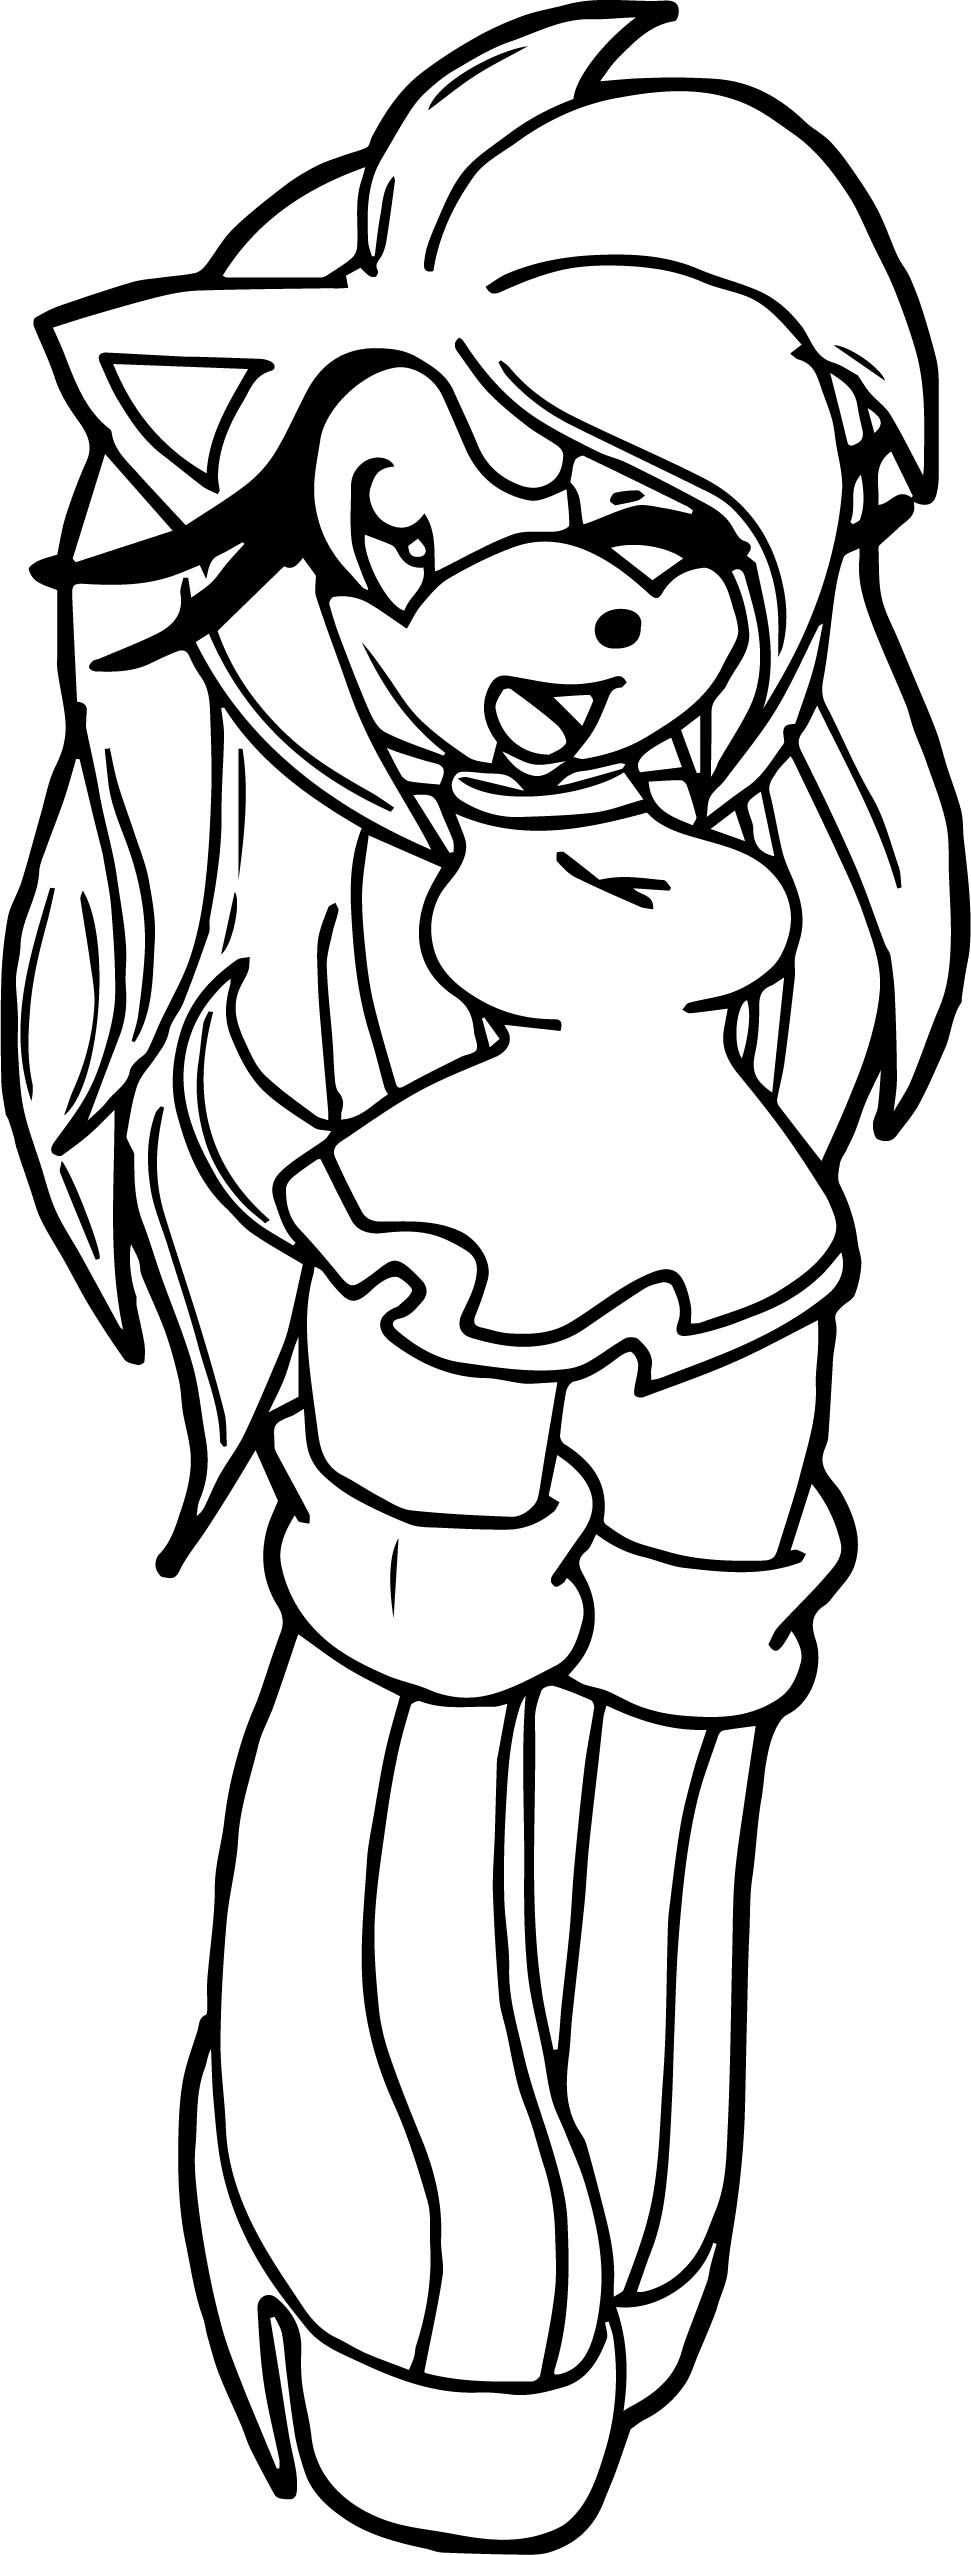 Amy Rose Yes Coloring Pages Wecoloringpage